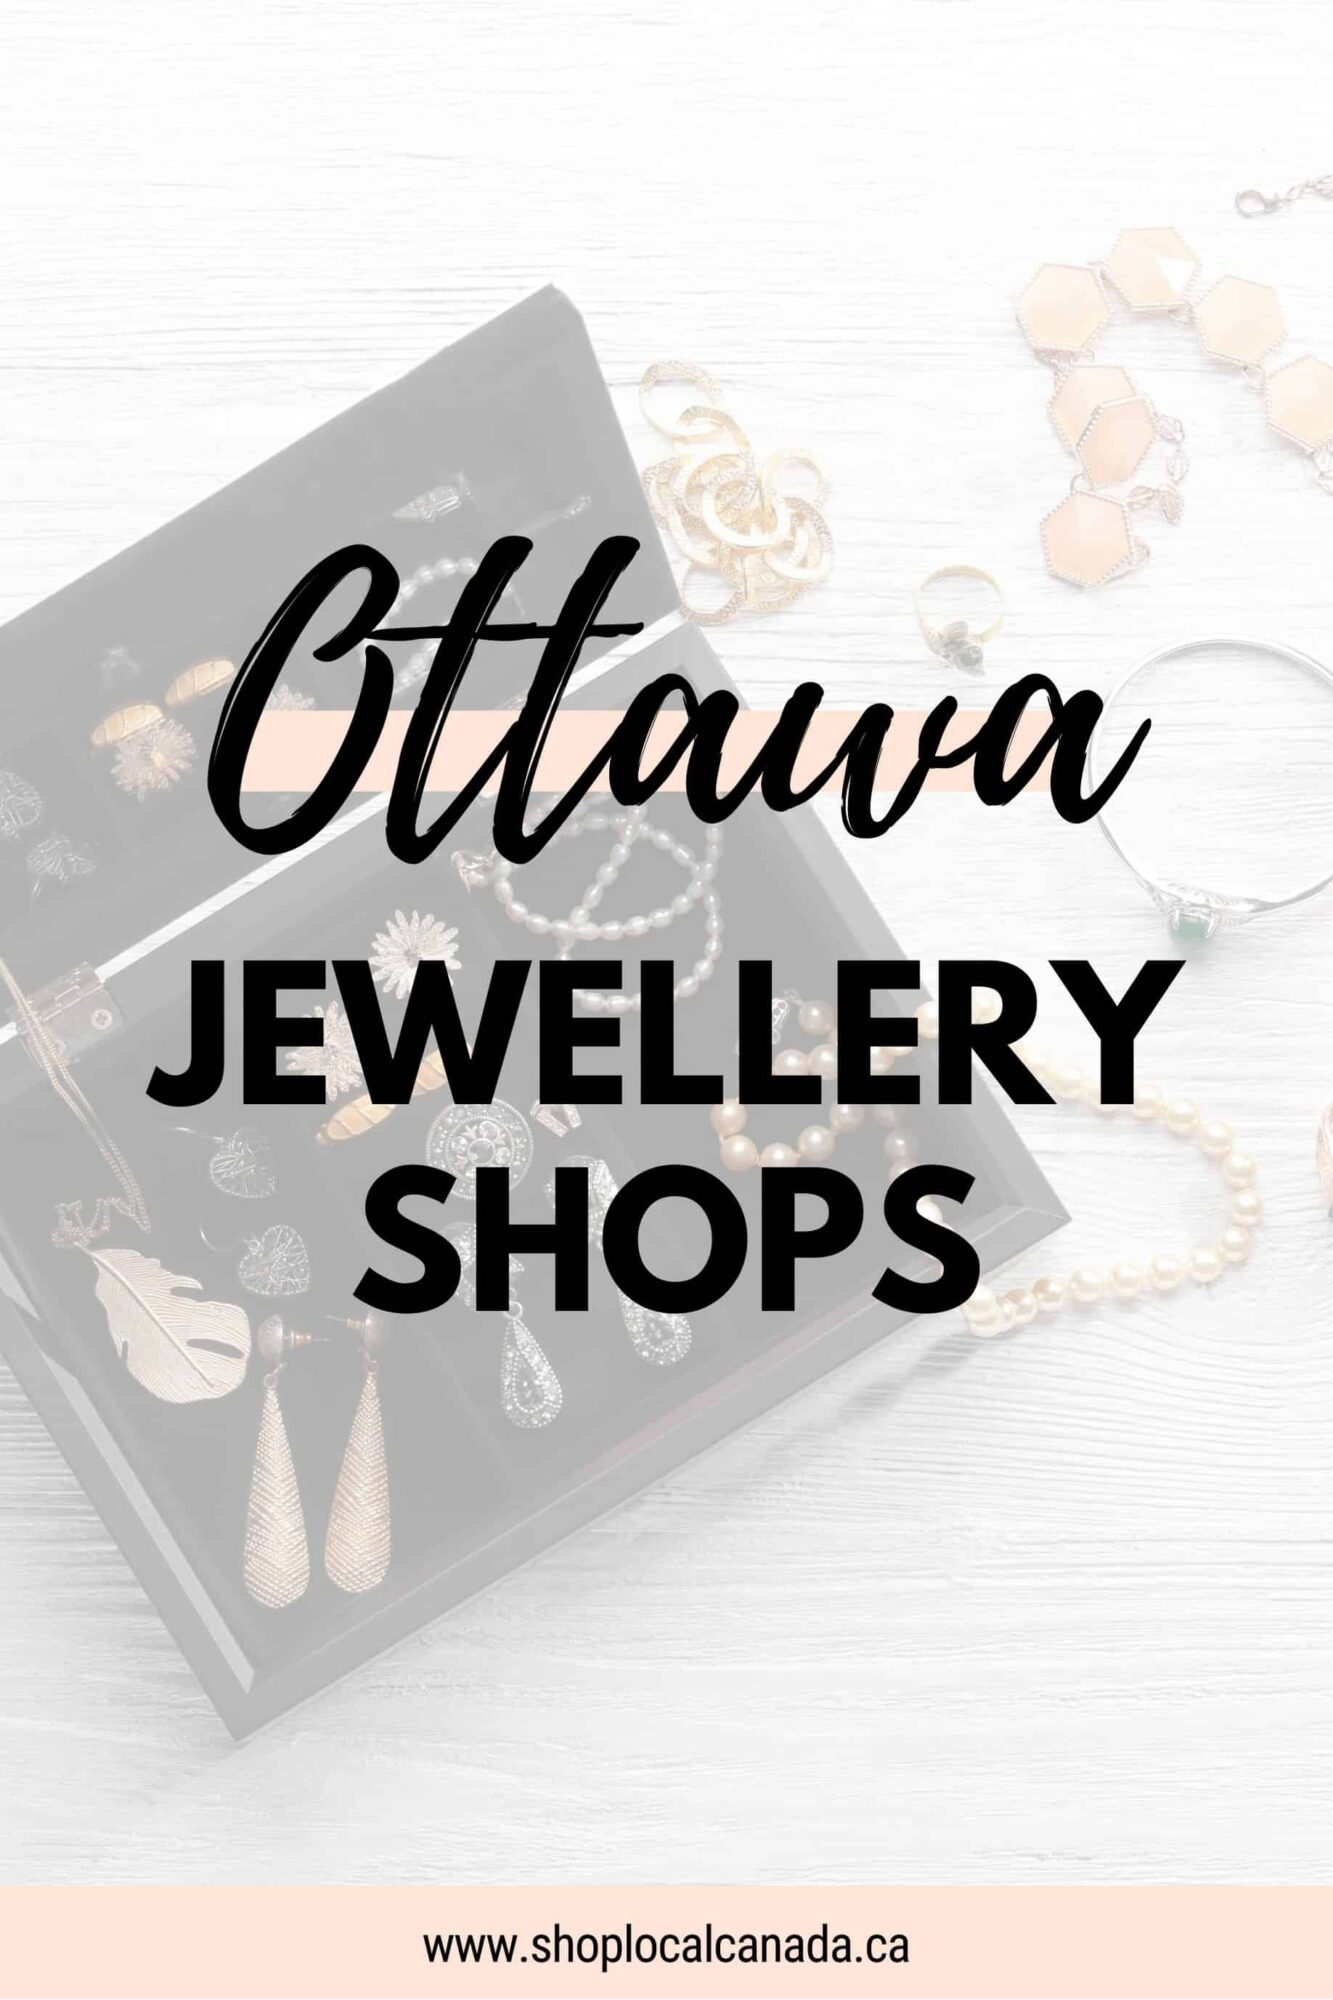 Ottawa Jewellery Shops